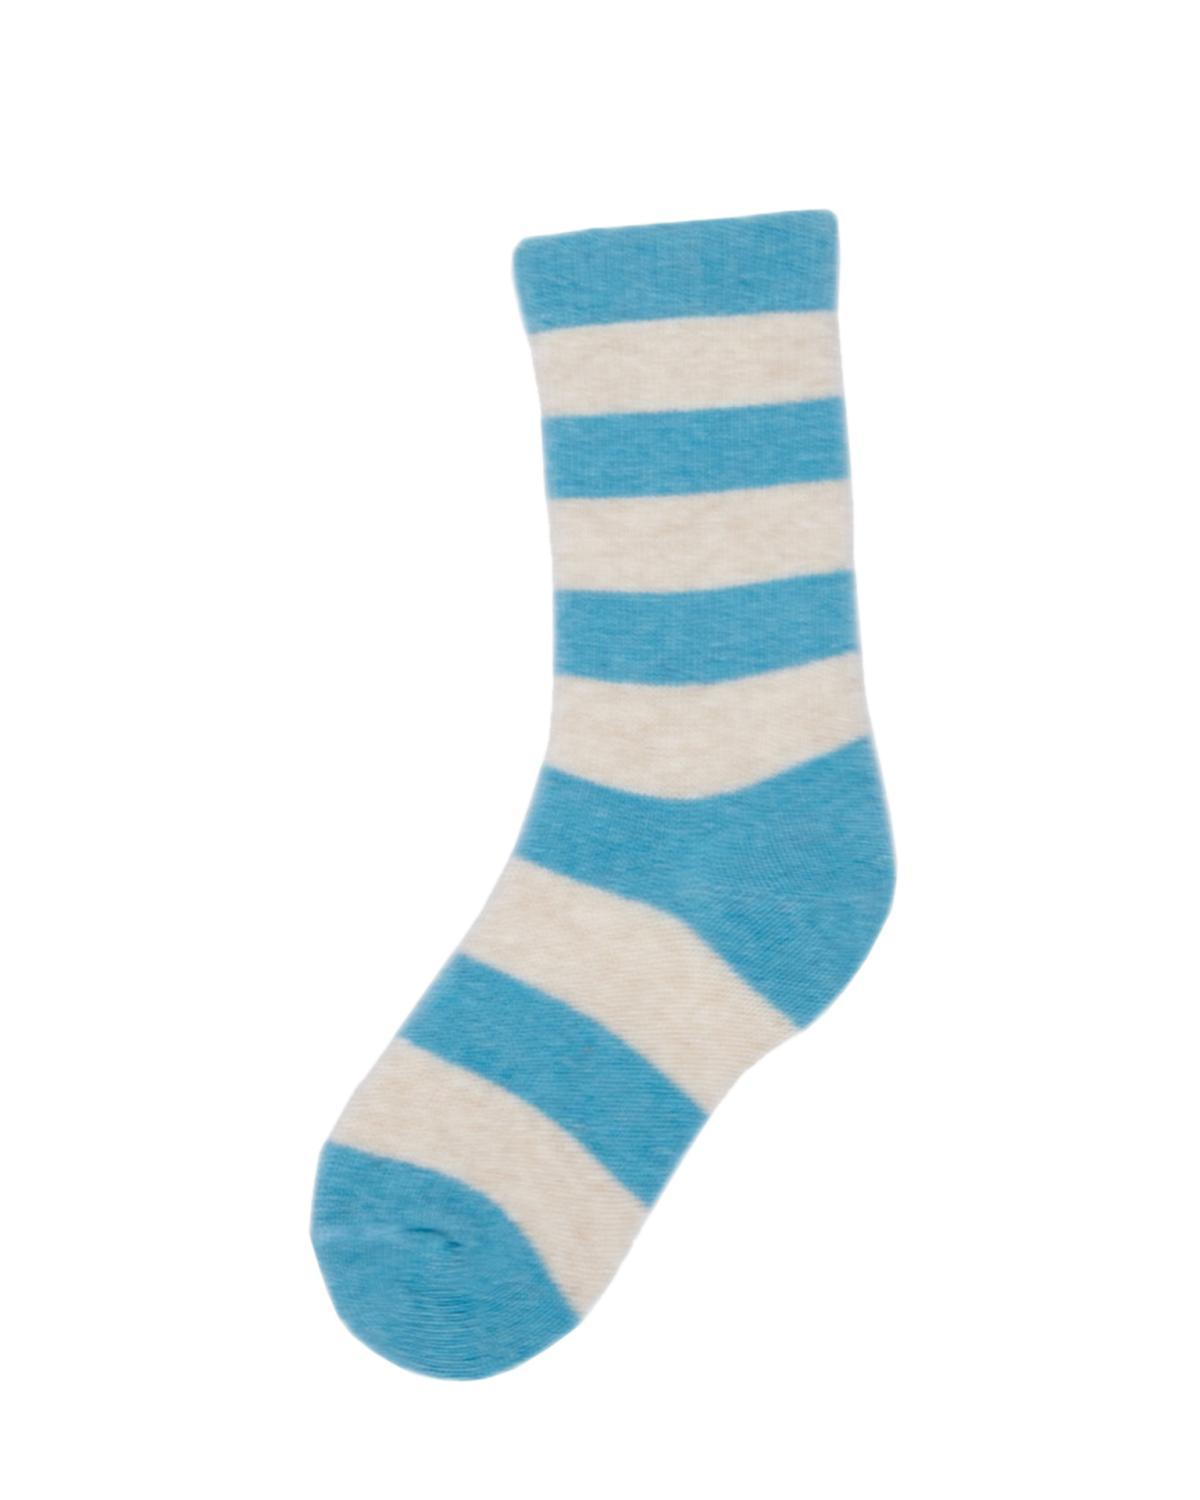 Little lisa b. accessories Turquoise Rugby Stripe Toddler Socks